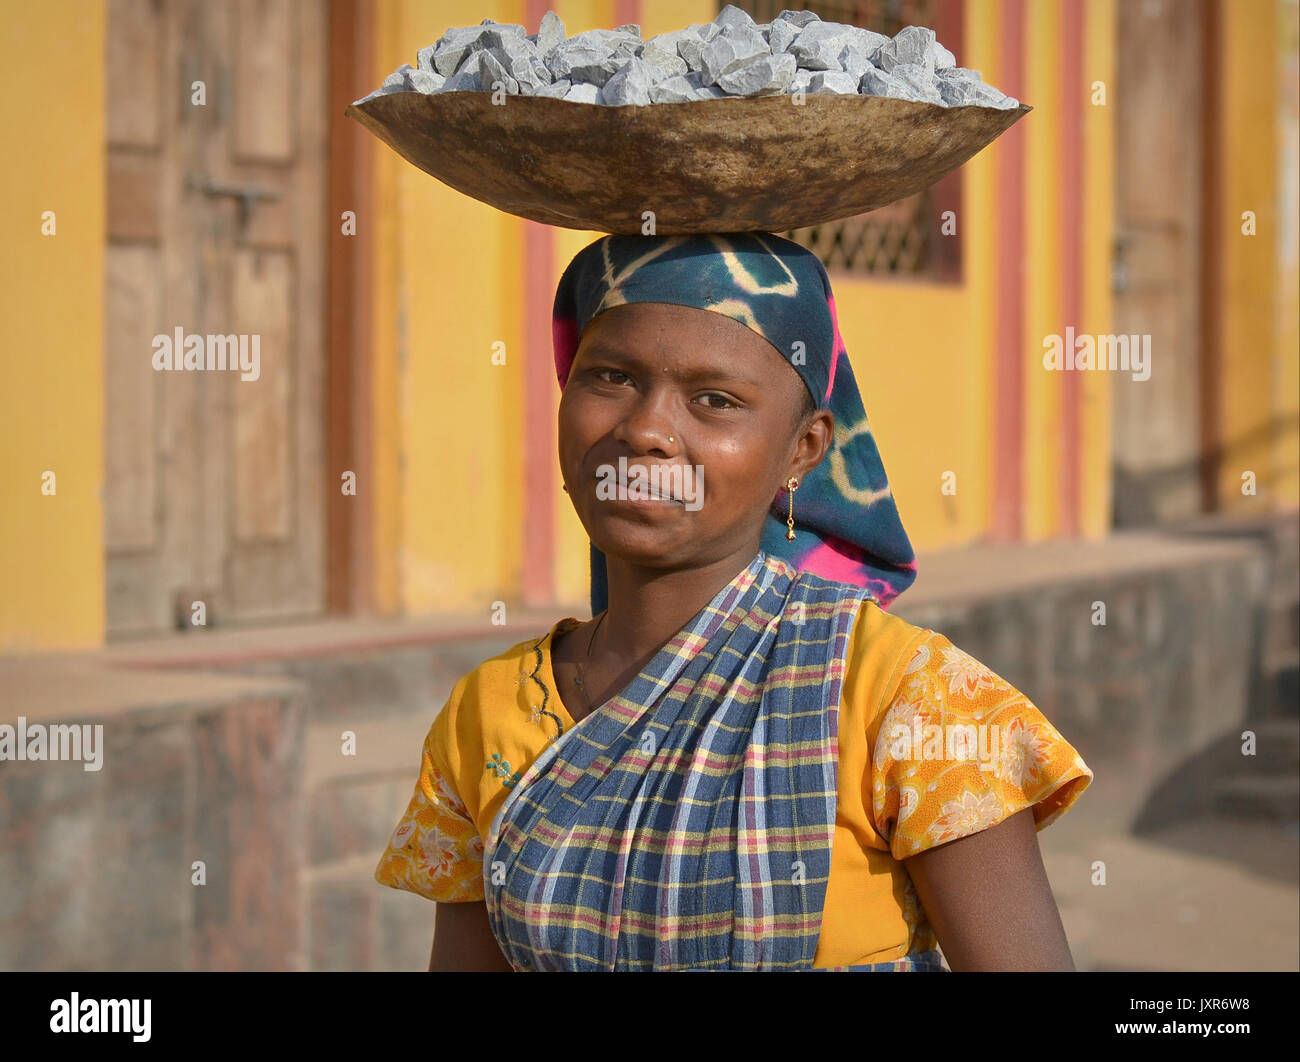 Closeup street portrait of a sari-clad young Indian Adivasi tribal woman, balancing on her head a metal bowl with - Stock Image